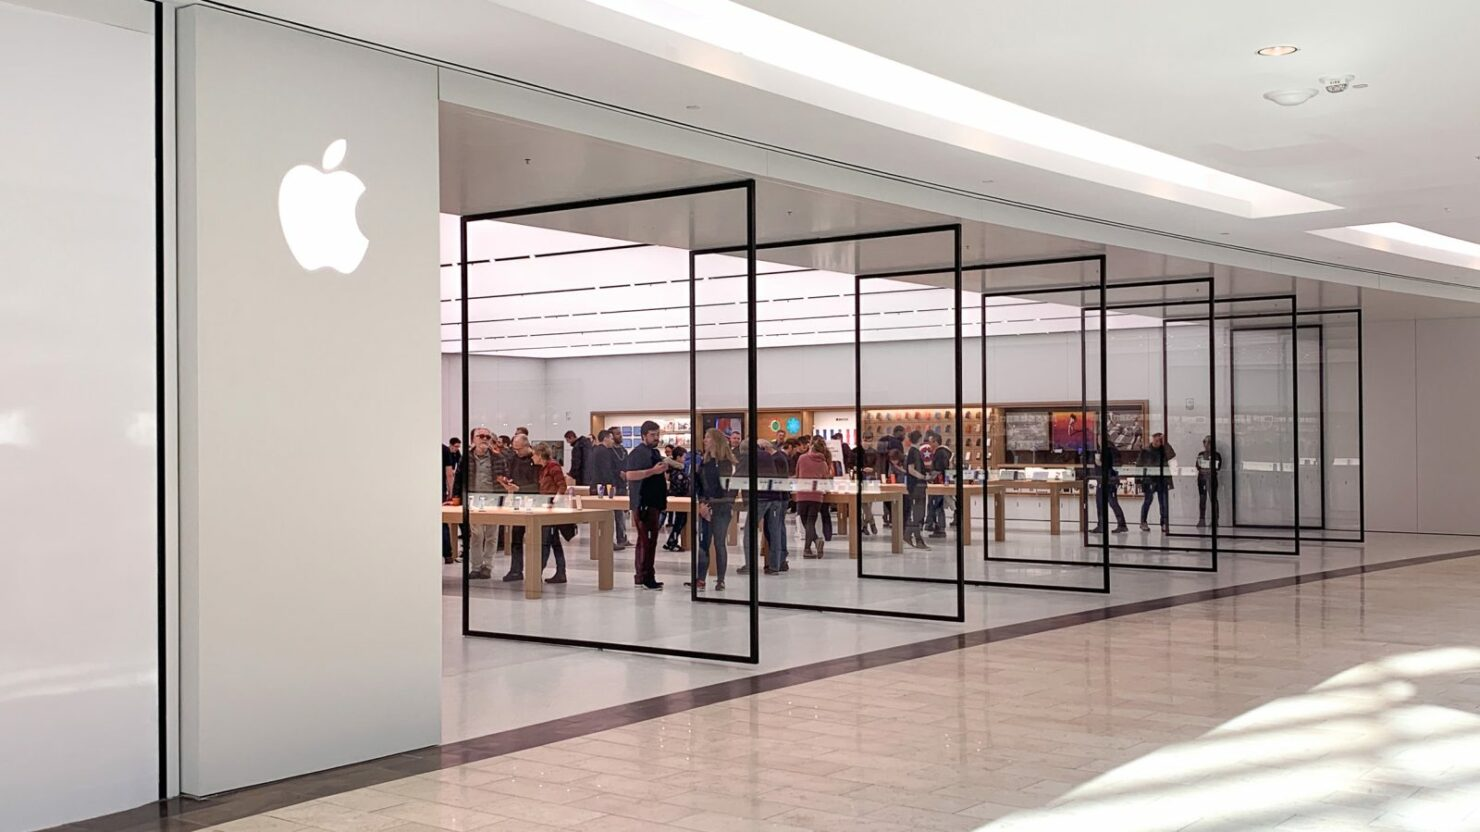 Apple Will Give Its Retail Employees $1,000 Bonus for Their Efforts During the Pandemic